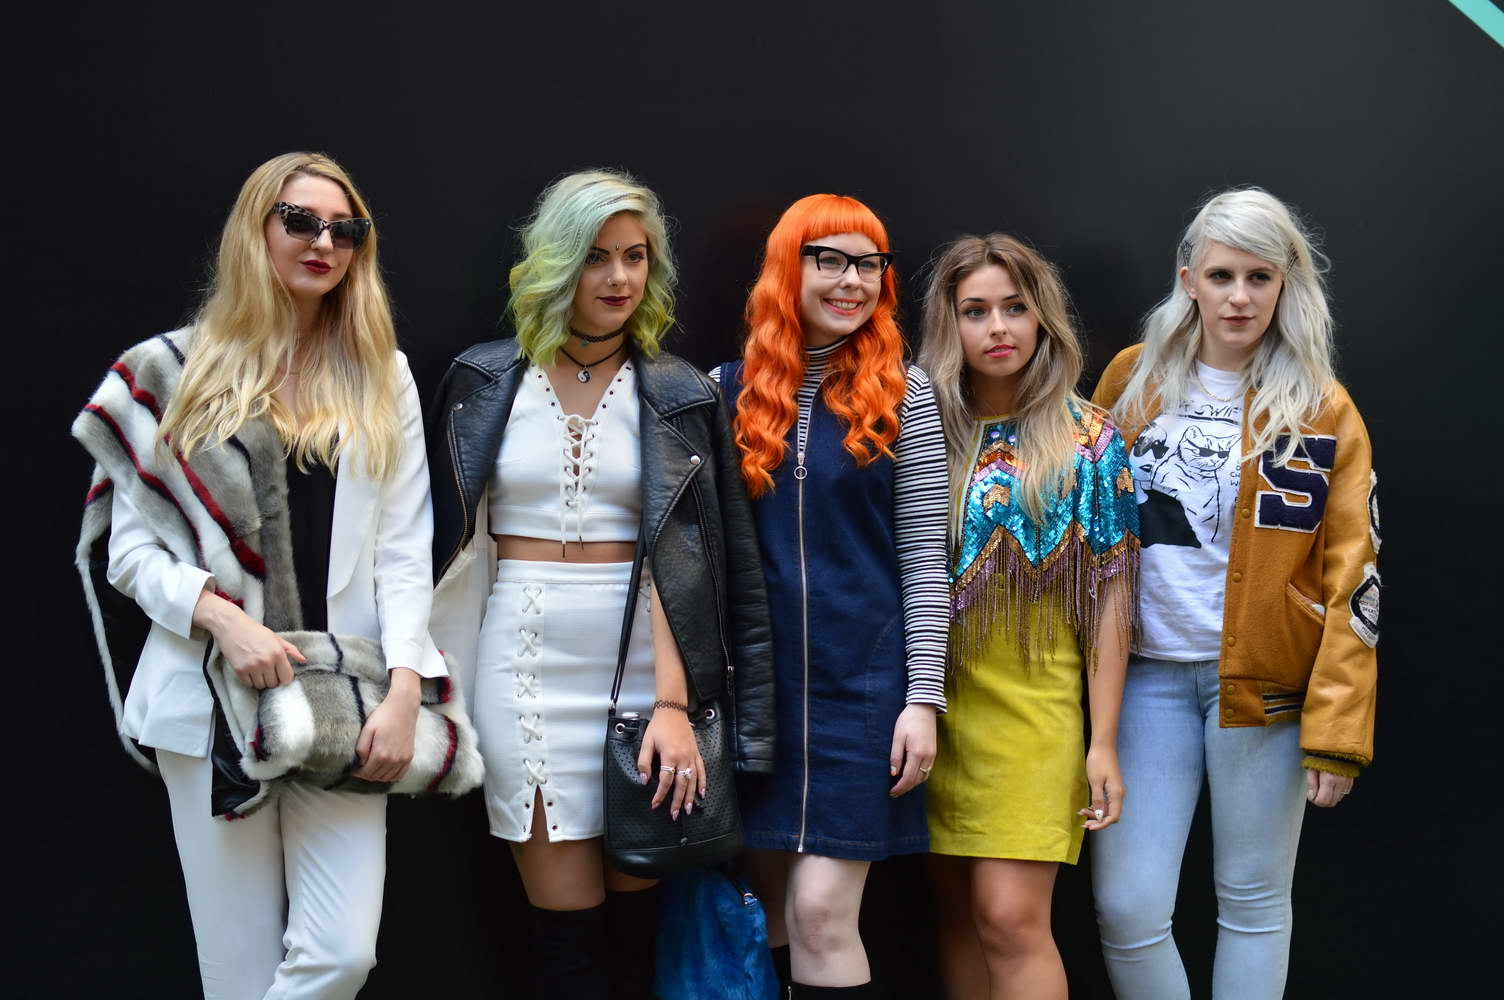 These ladies remind me of a 70s tv show...hmm which one was it..